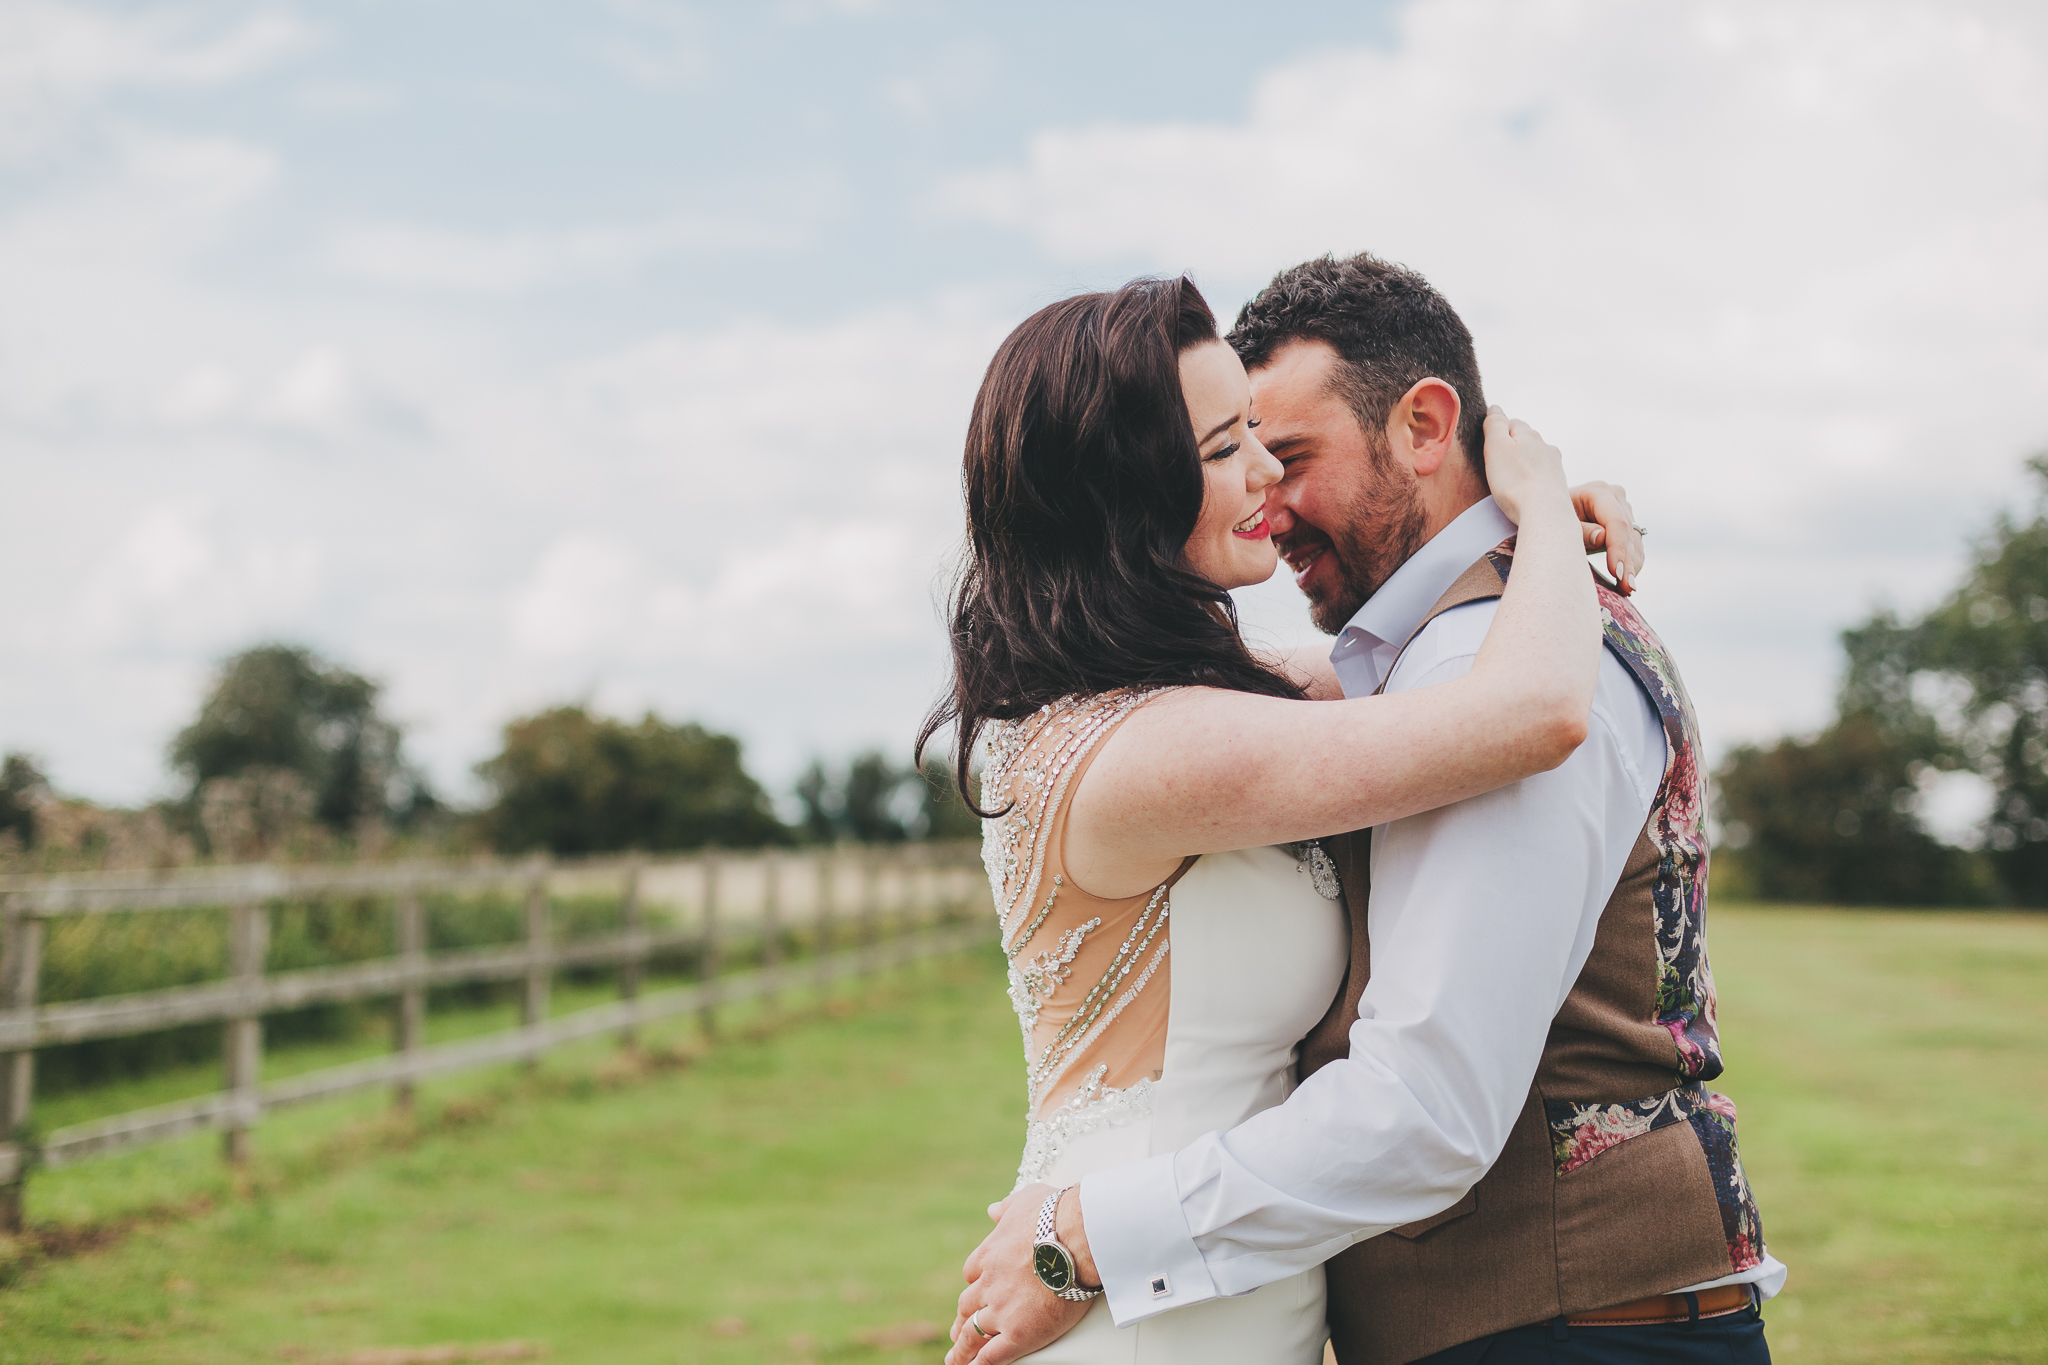 Bride and groom hugging at sunset in a field at Coltsfoot Country Retreat.